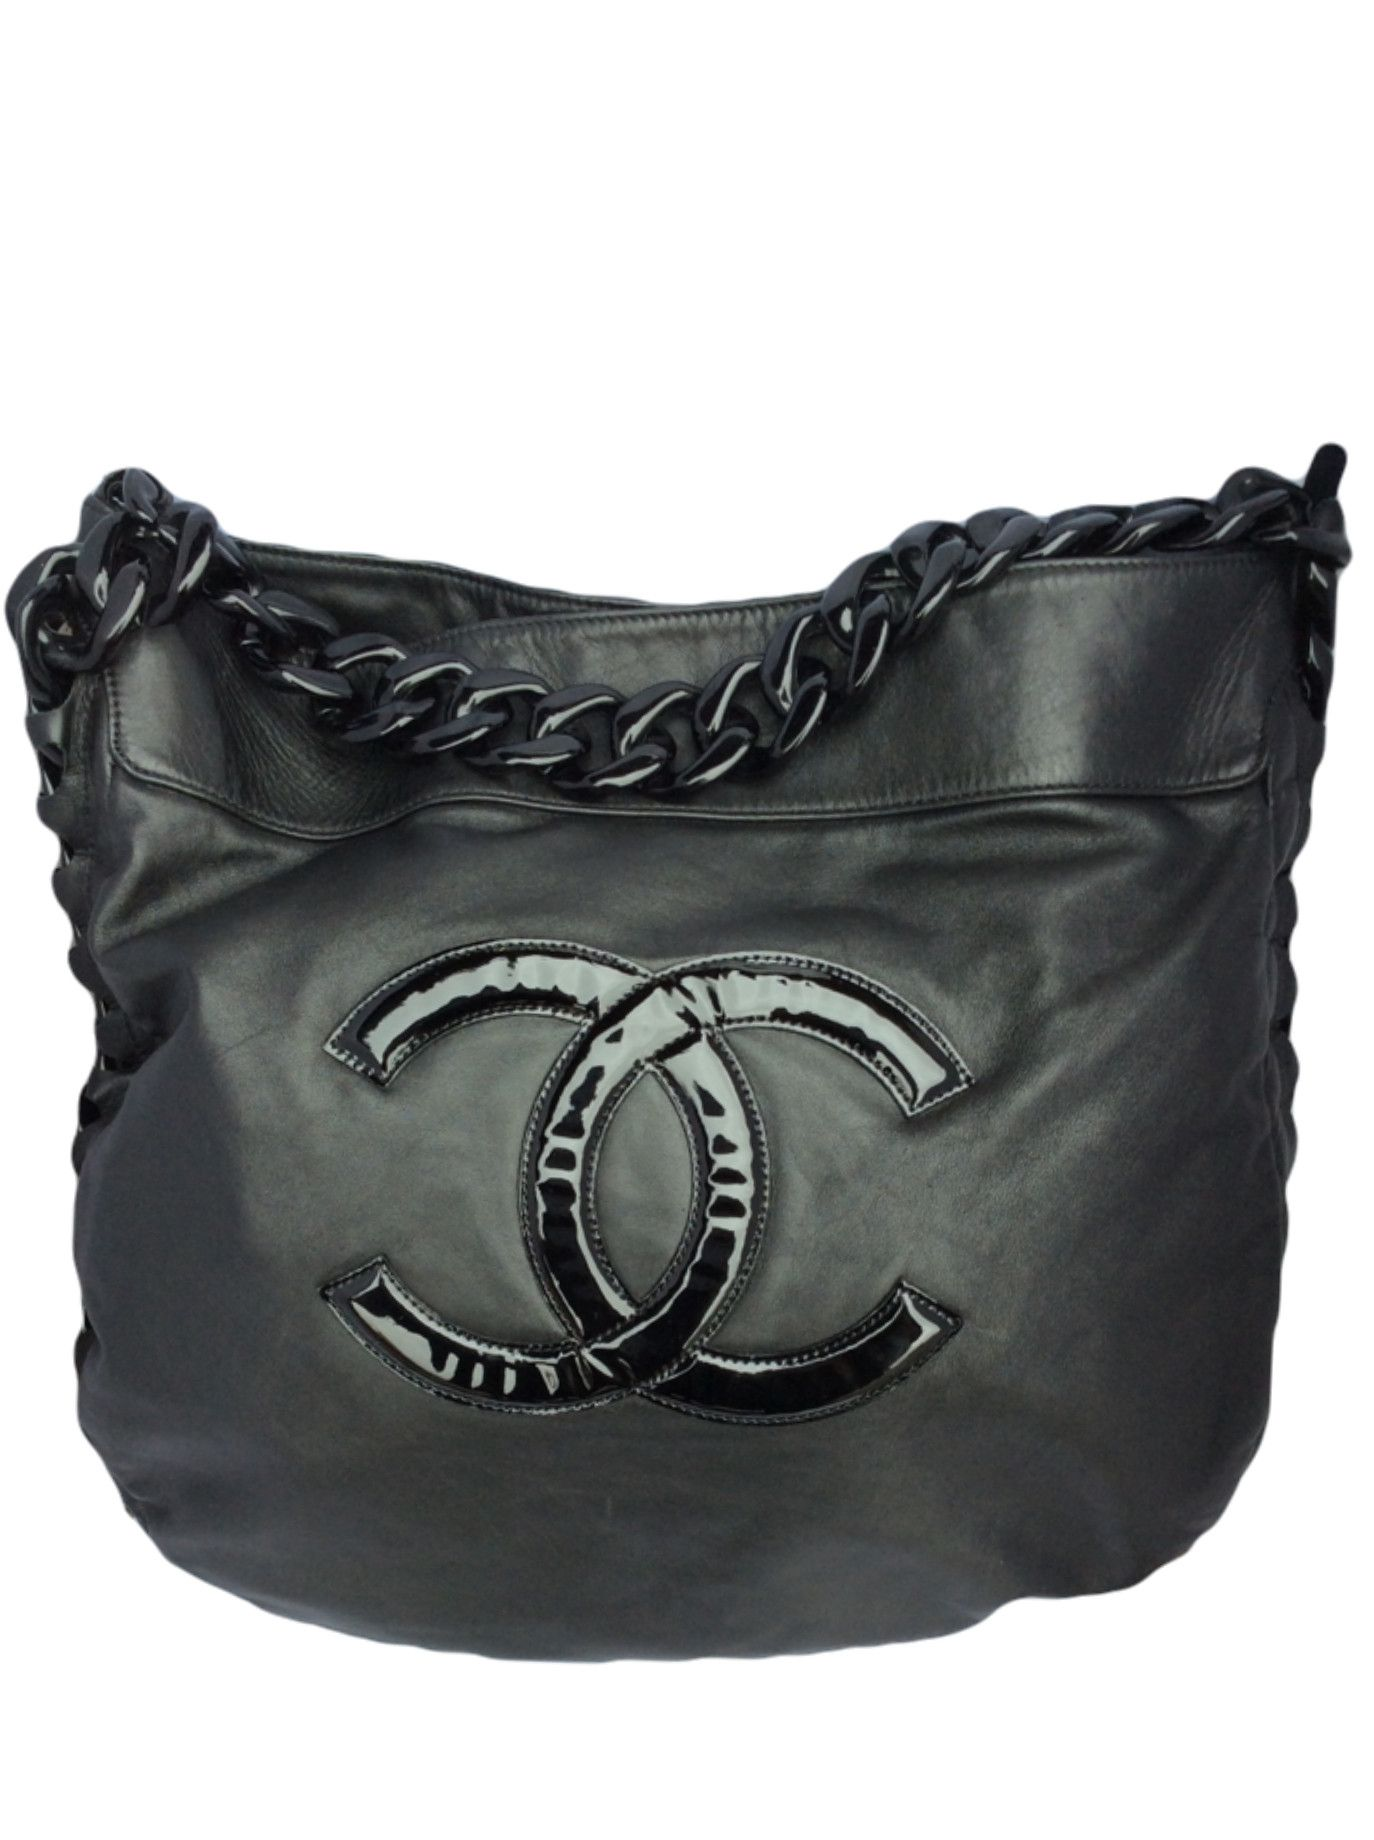 eff292eceafd Chanel jumbo black hobo bag with plastic chain handle – Timpanys Dress  Agency